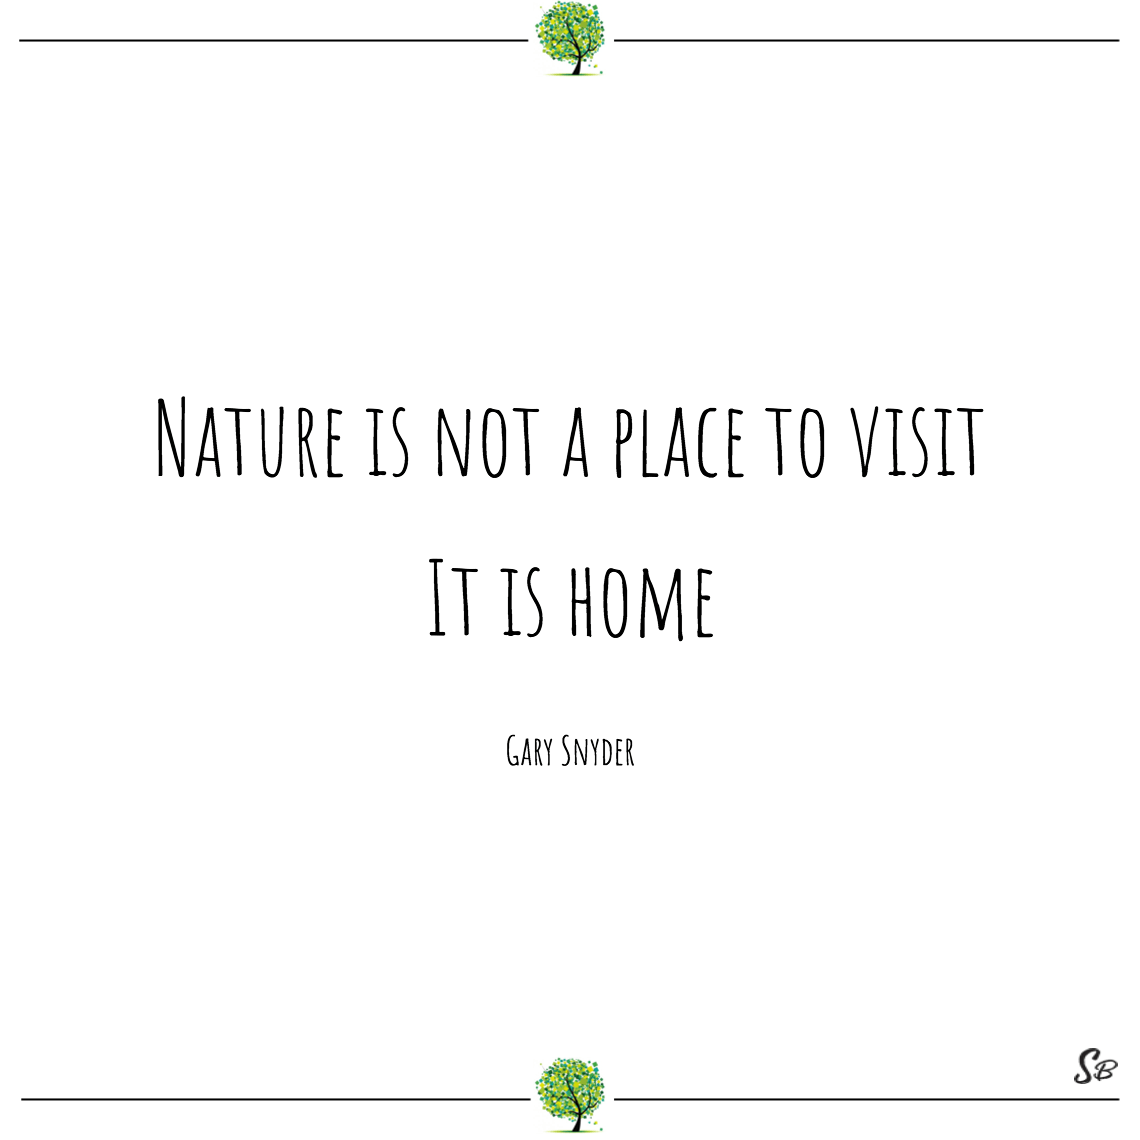 Quotes Nature 31 Most Beautiful And Inspiring Nature Quotes  Spirit Button